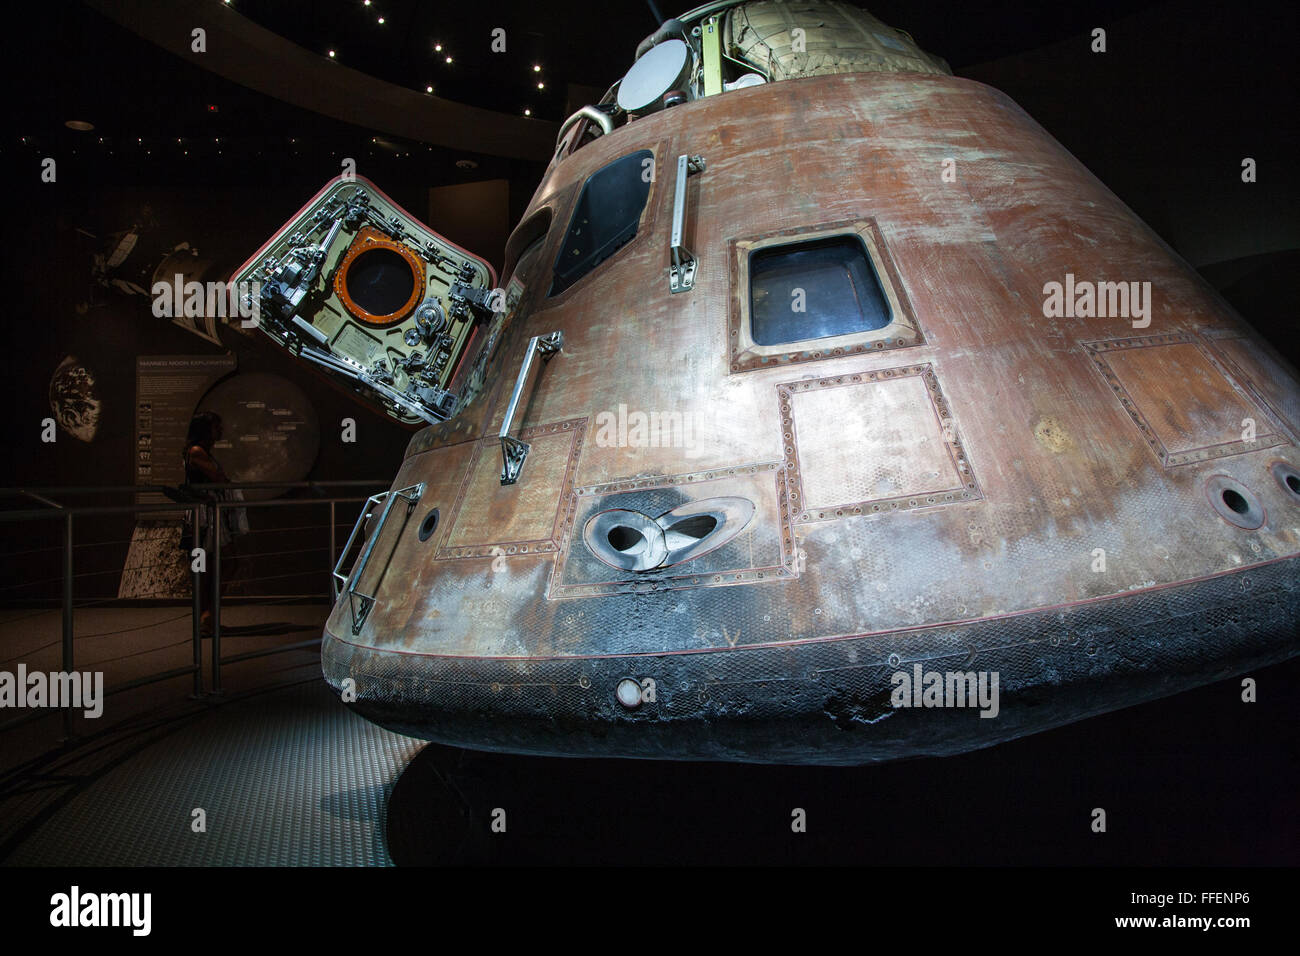 Apollo 14 re-entry capsule on display at Kennedy Space Center, Florida, USA - Stock Image